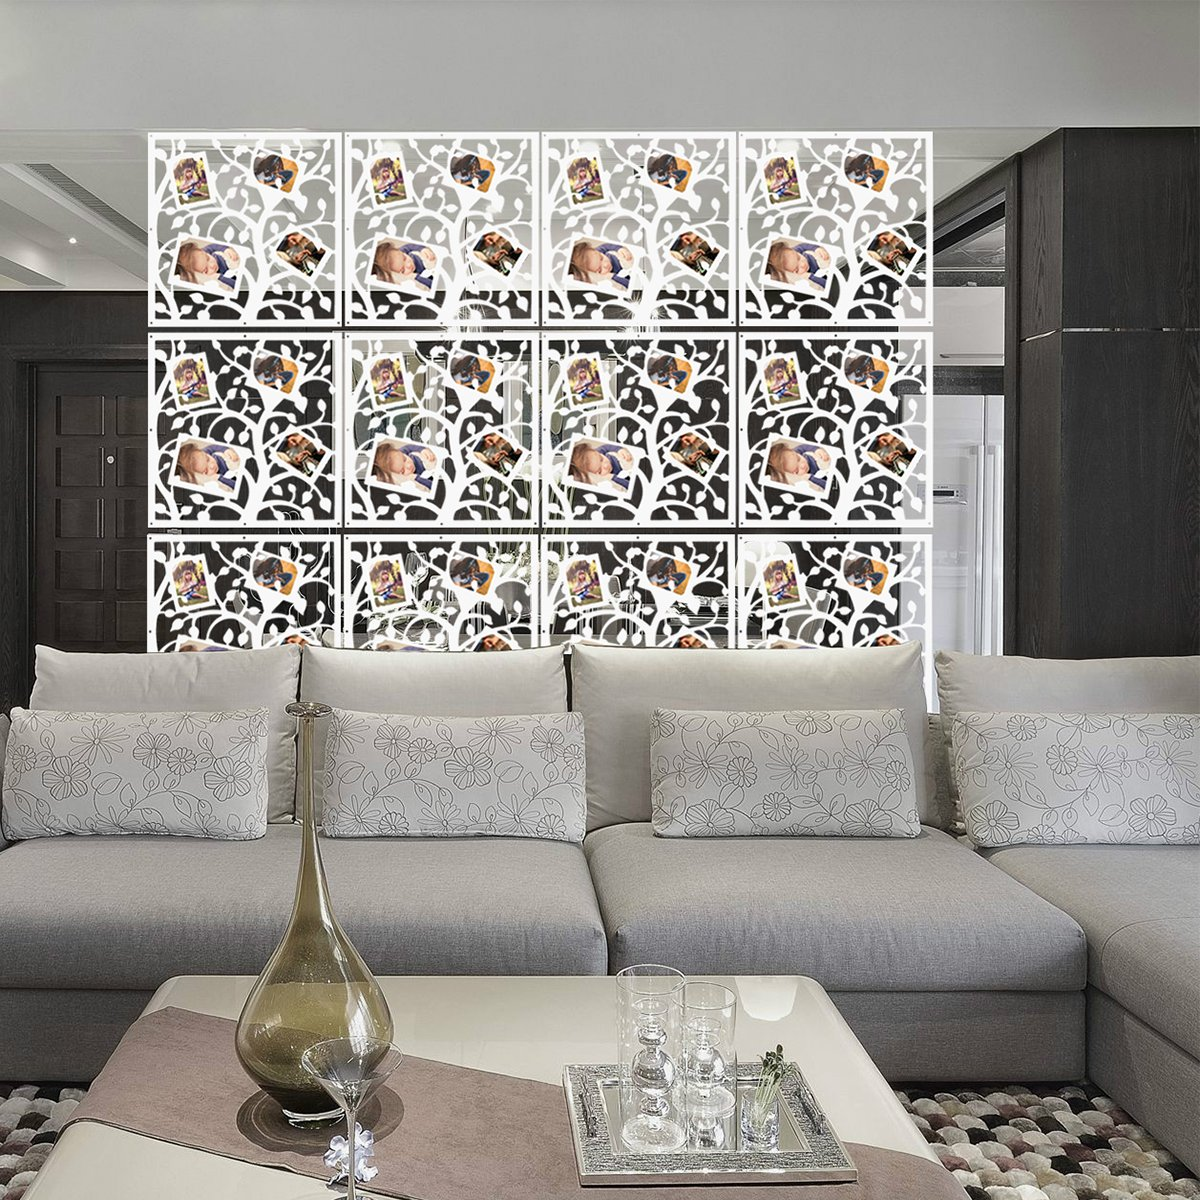 Cheap Photo Frame Screen Room Divider Find Photo Frame Screen Room